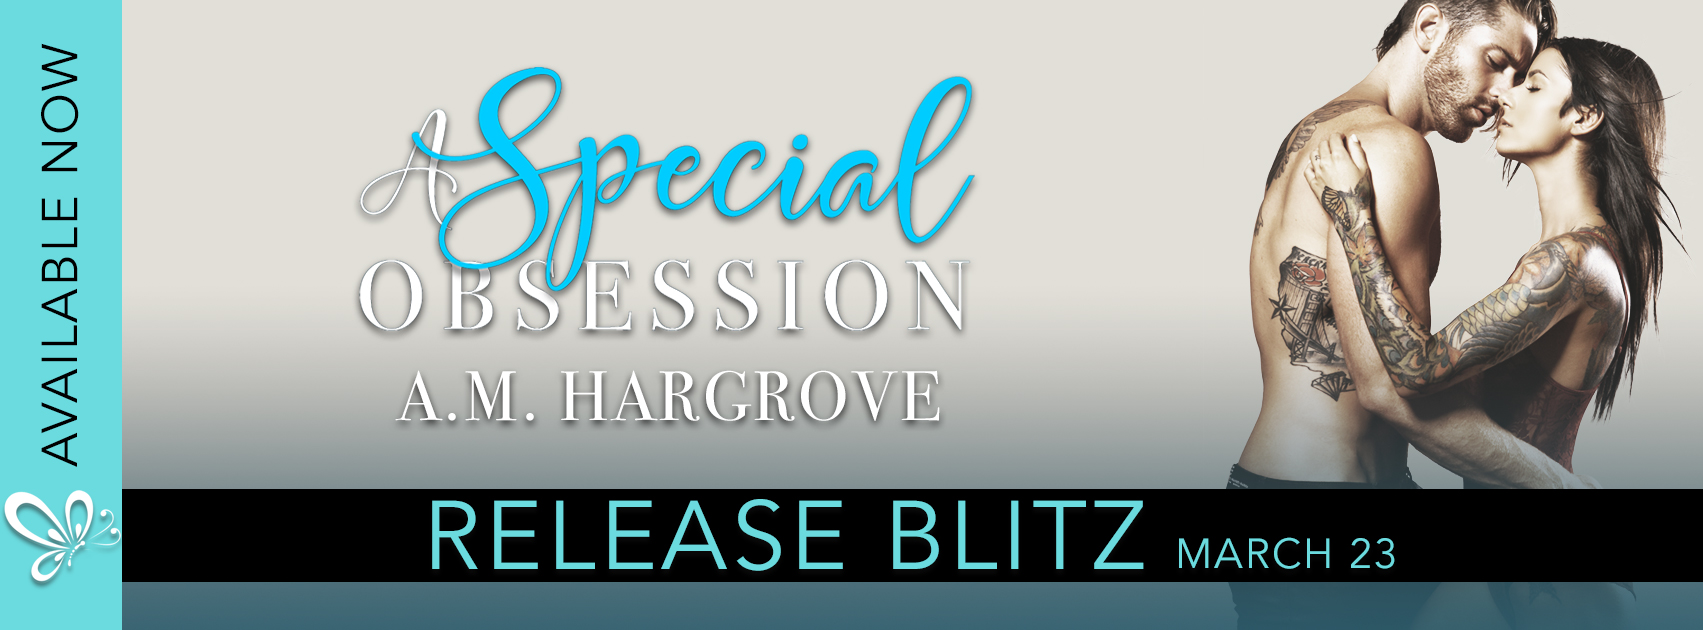 Release Blitz: A Special Obsession by A.M. Hargrove